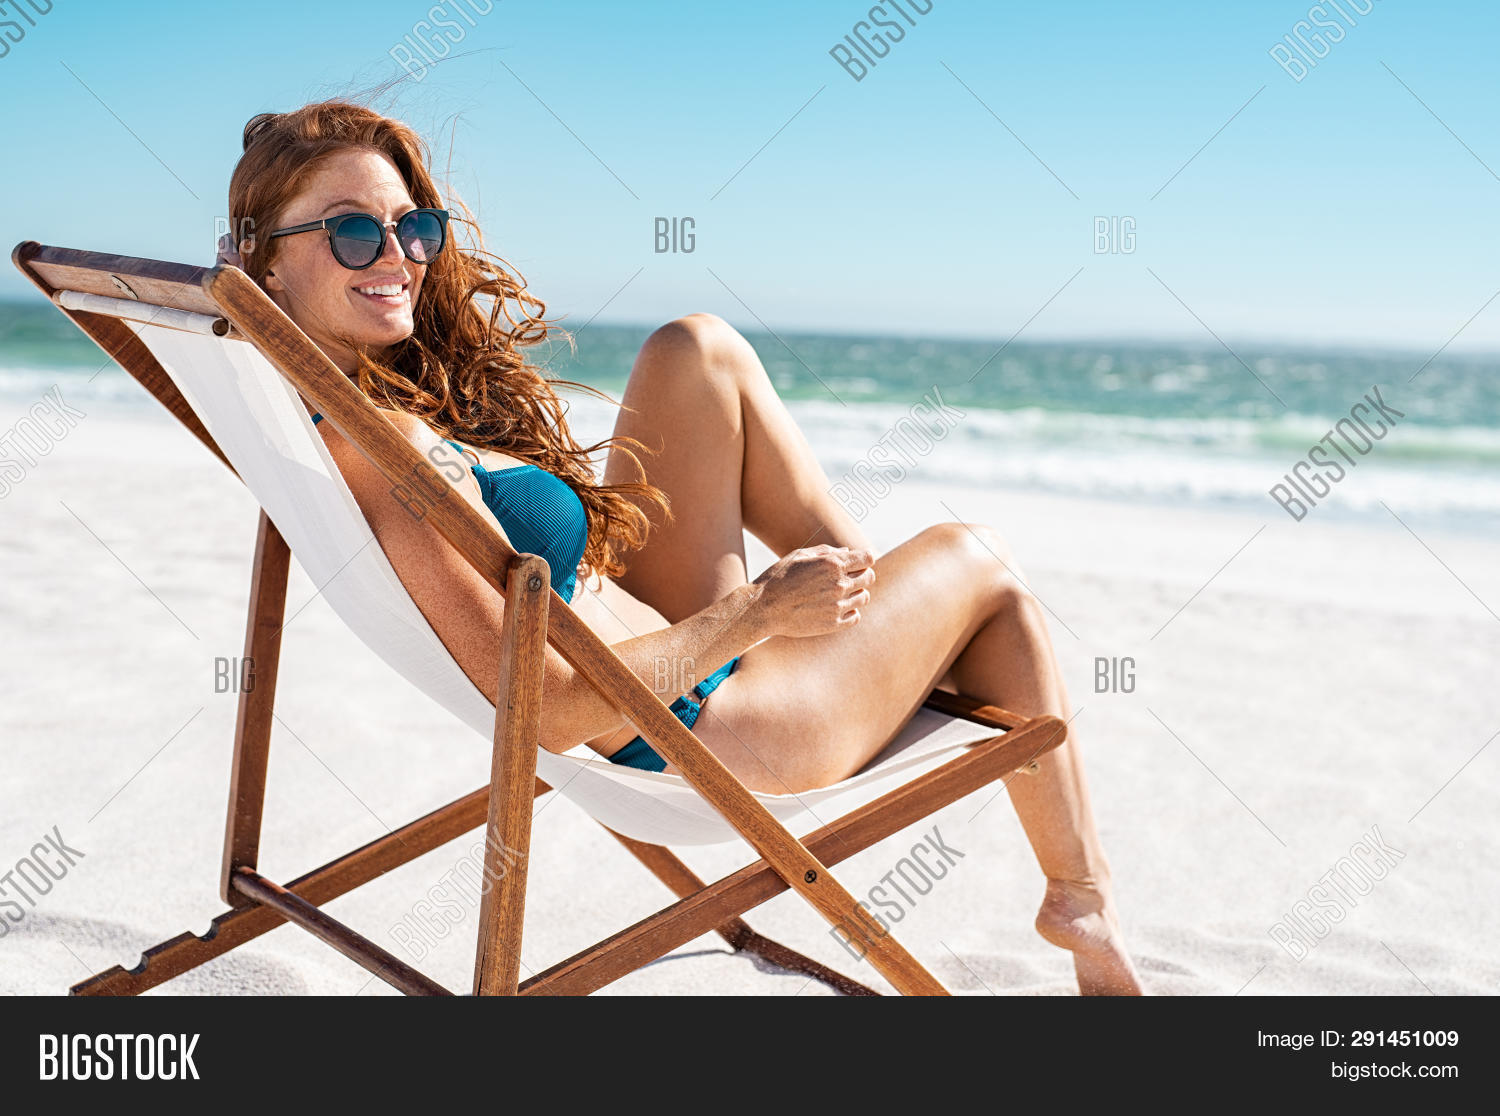 Happy young woman relaxing on deck chair at beach while looking at camera. Mature woman with red hai